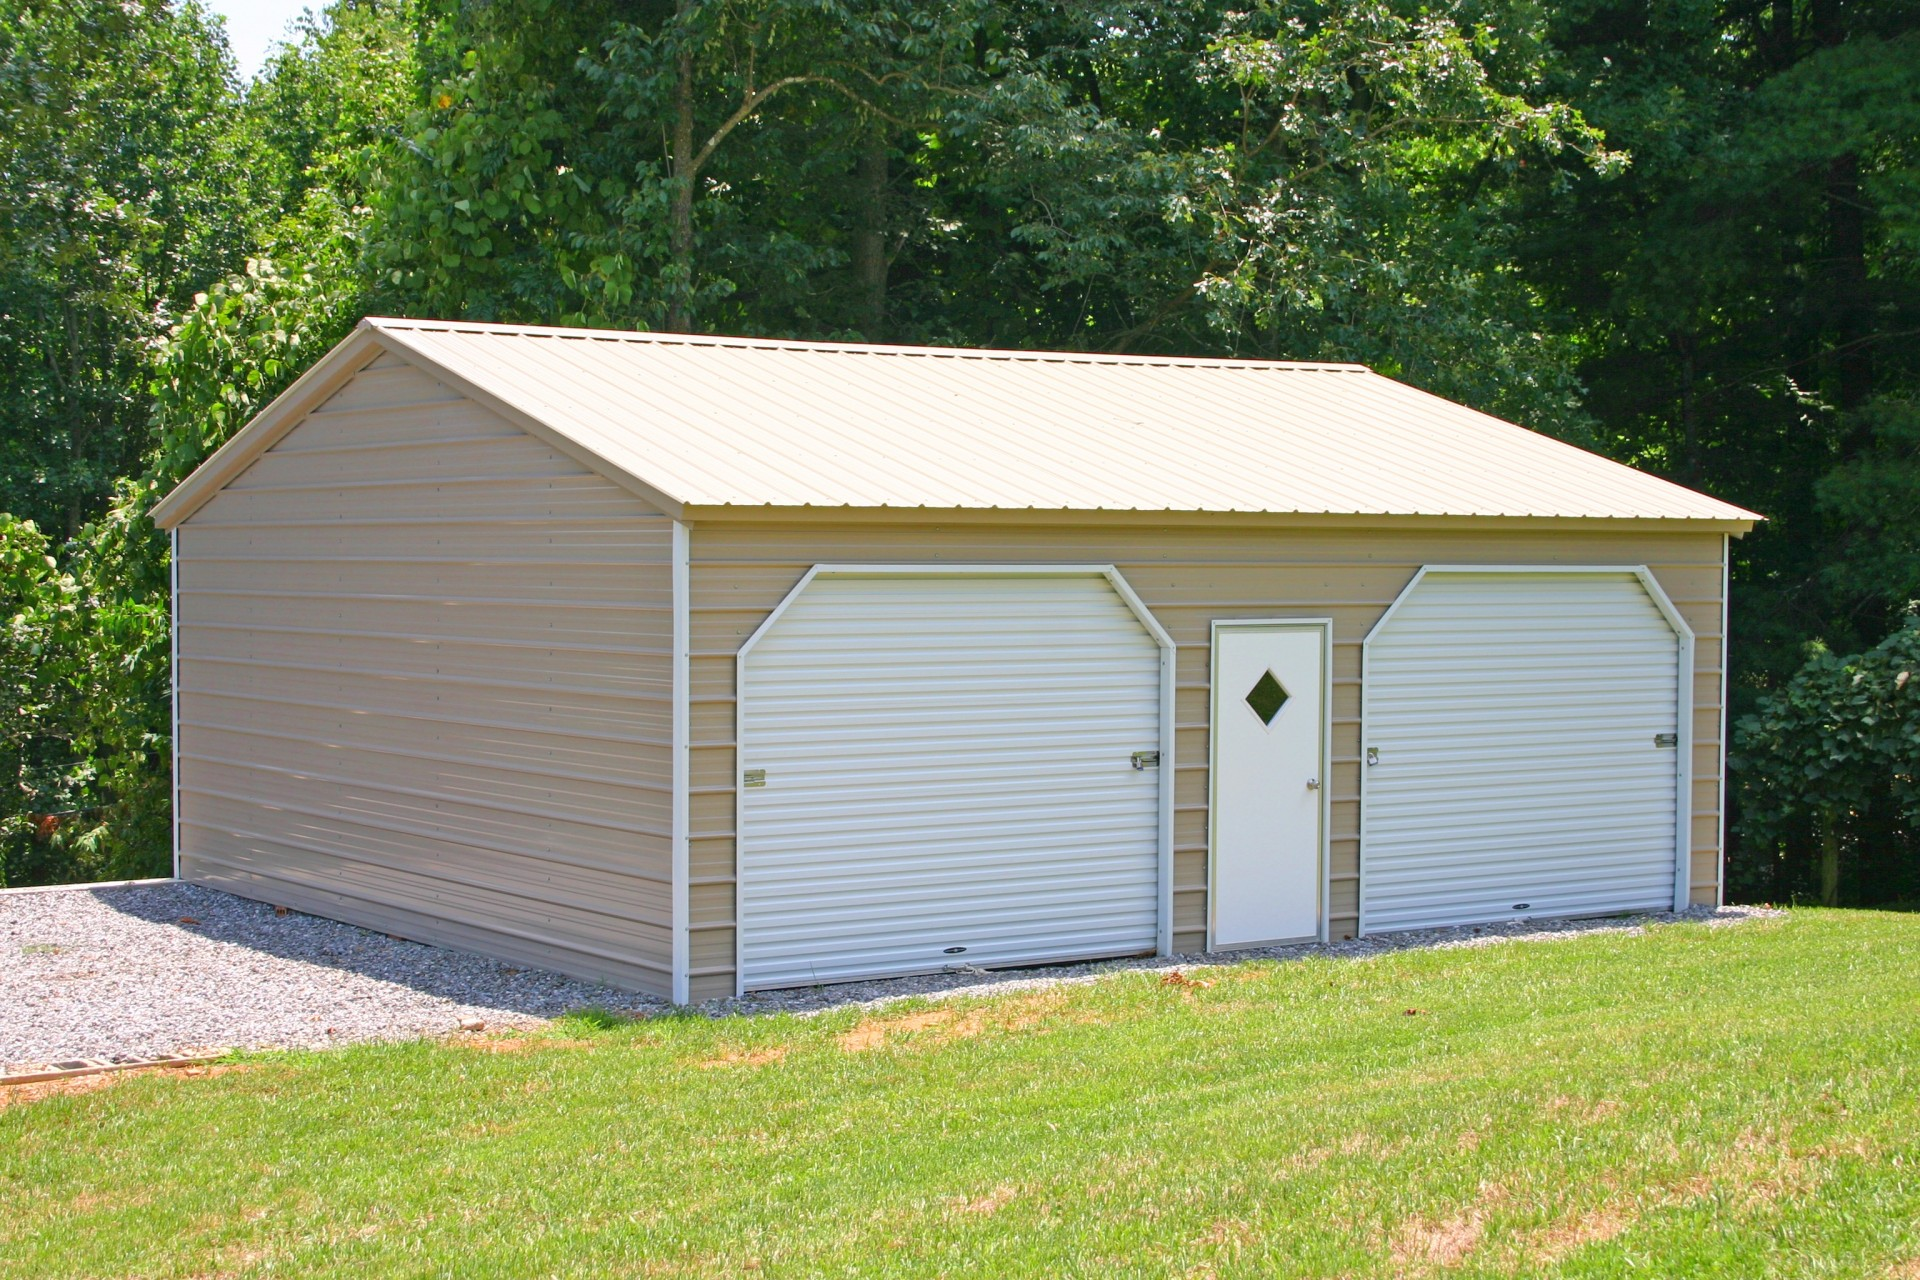 Carports florida fl metal garages barns rv covers for Sheds in brooksville fl